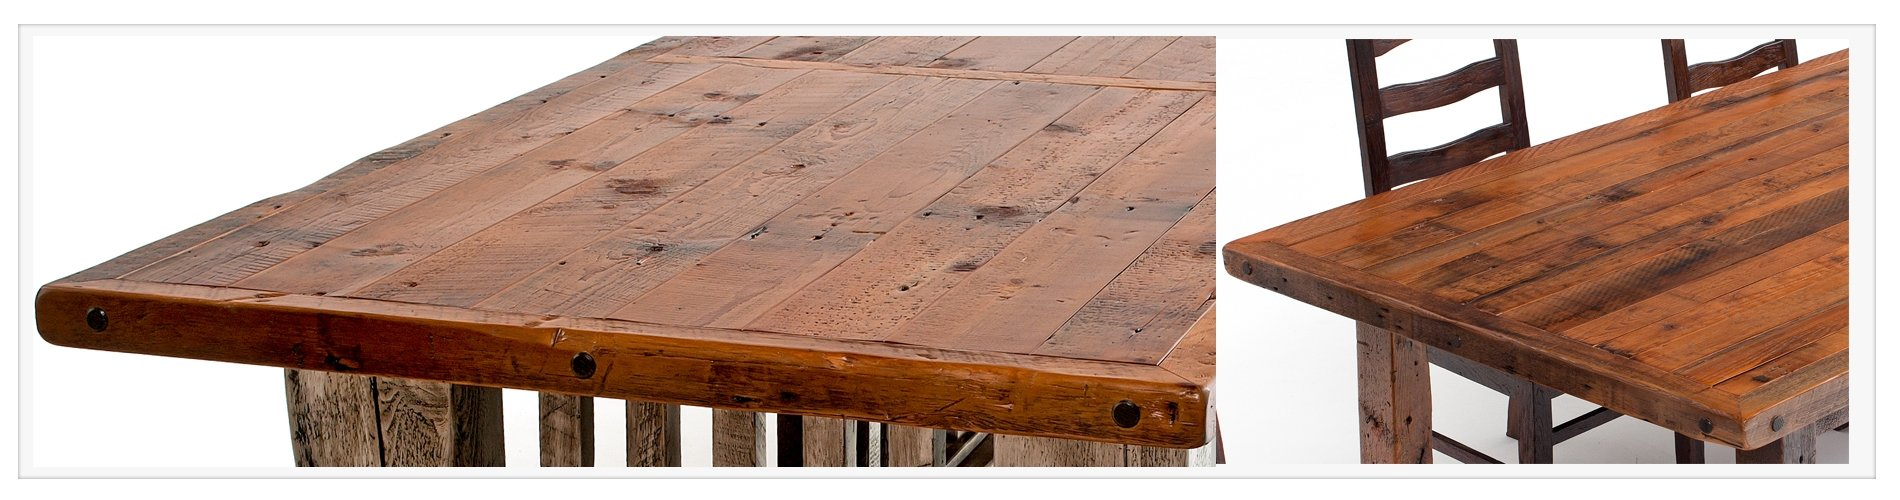 Barnwood Tongue and Groove Top